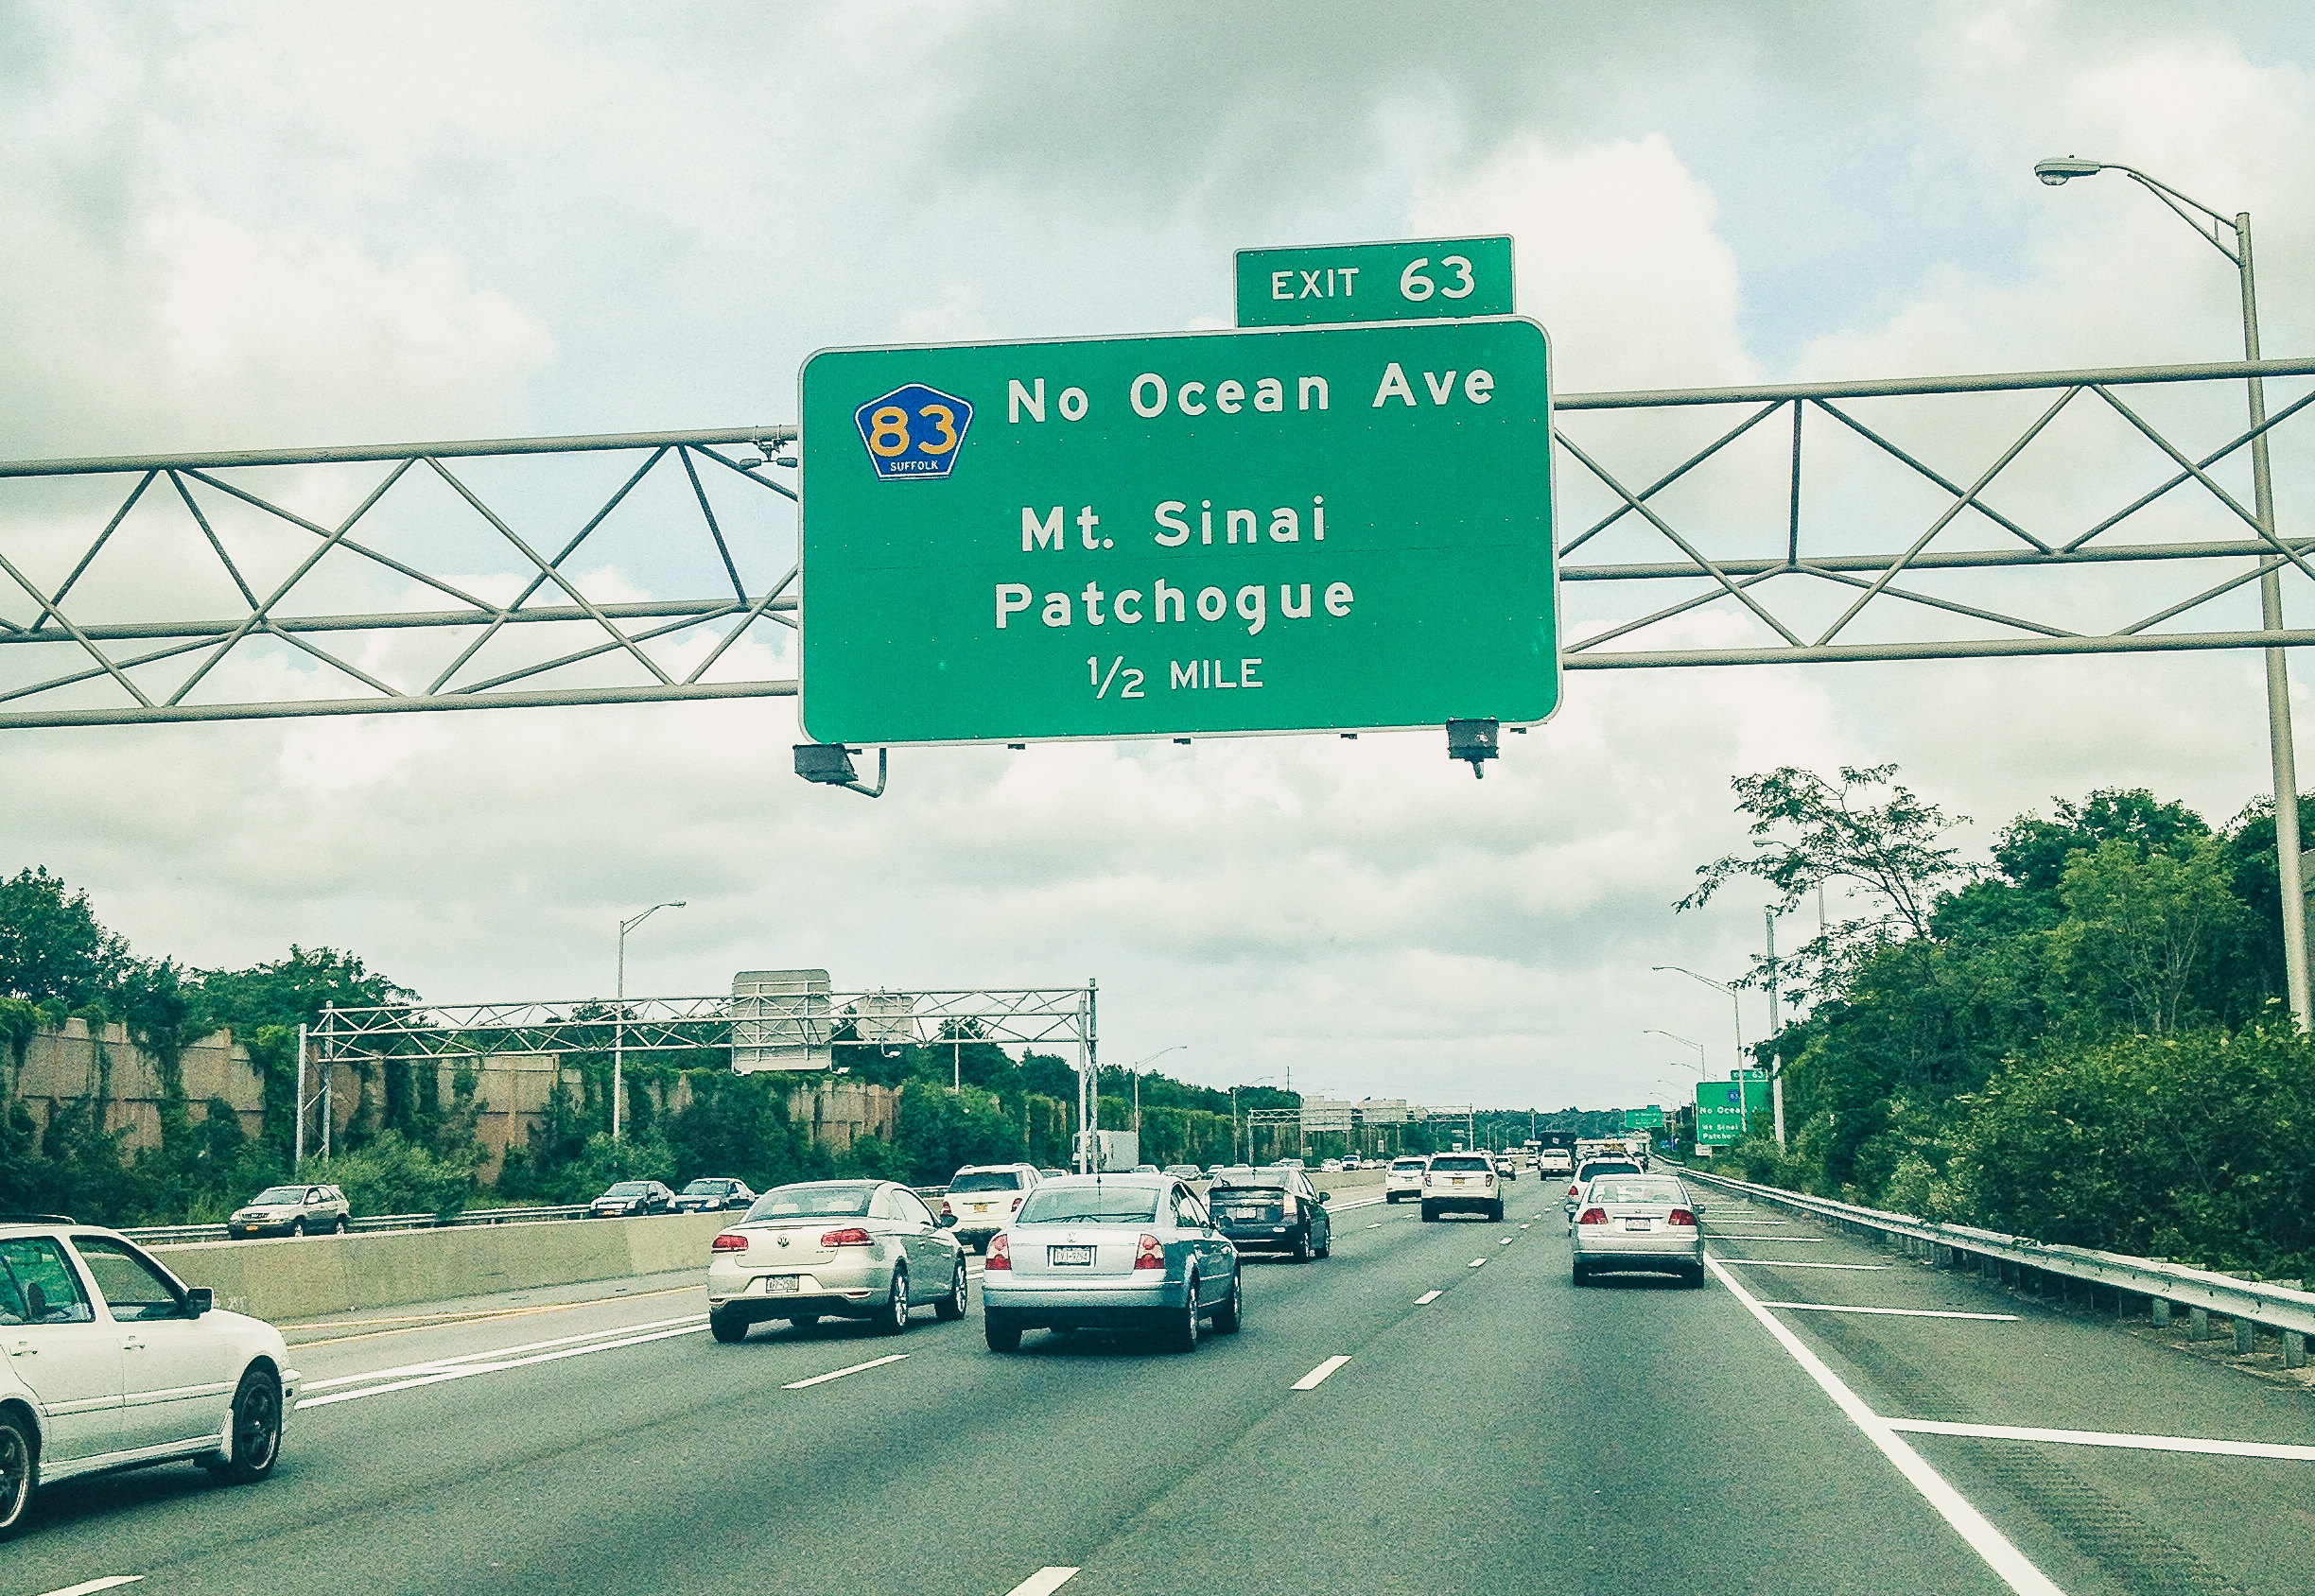 Long Island Expressway Exits For Lic